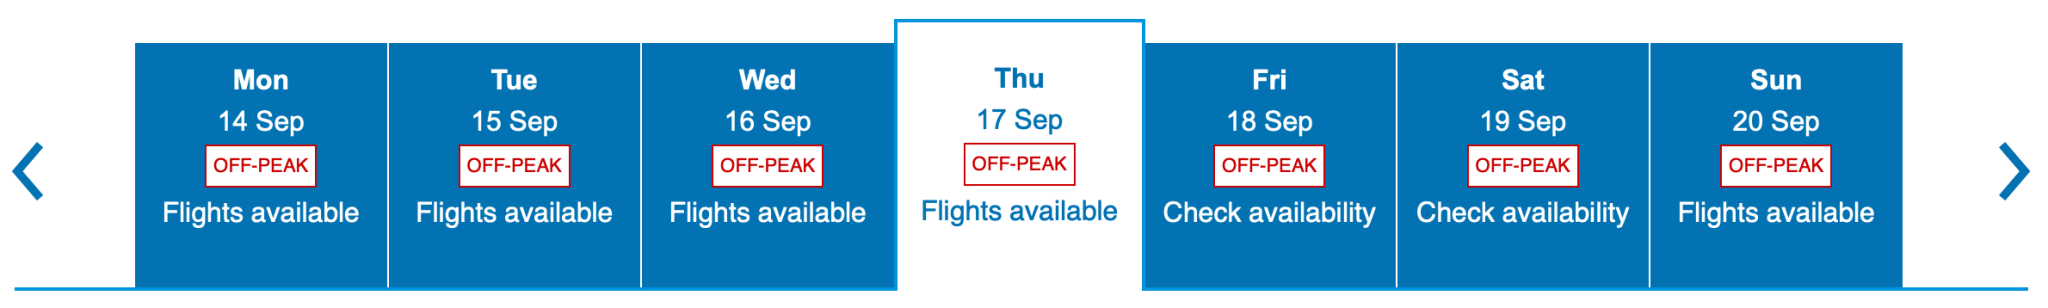 Viewing Peak and Off Peak Dates on BA Website Screen Shot